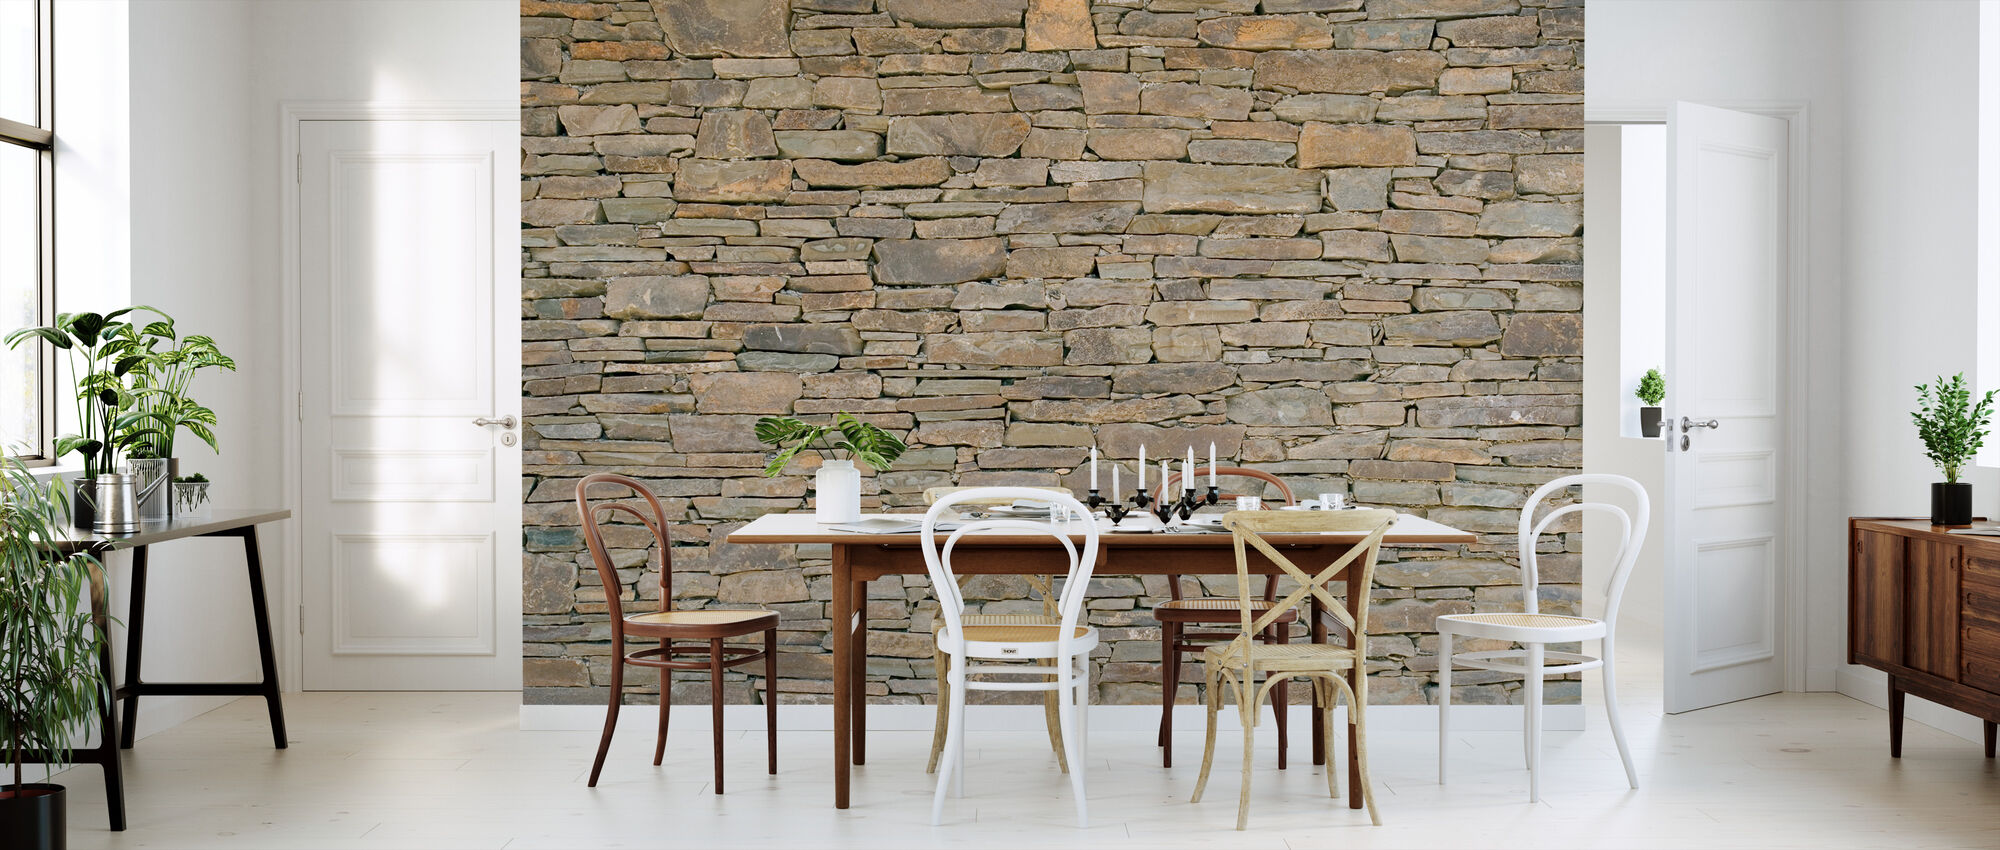 Stacked Stone Wall - Wallpaper - Kitchen